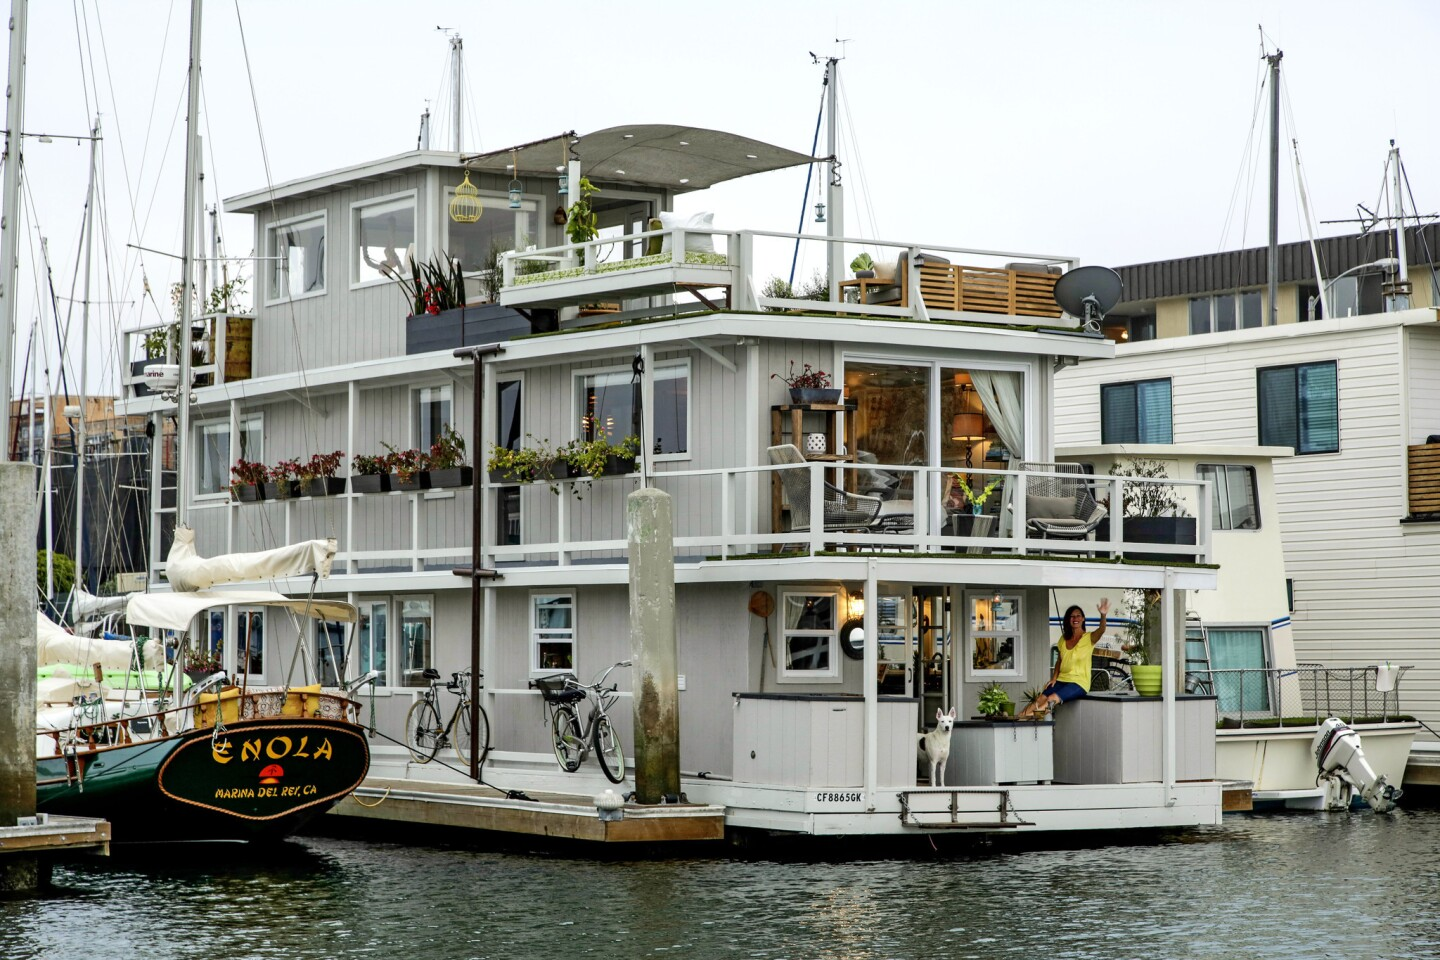 The houseboat remodel